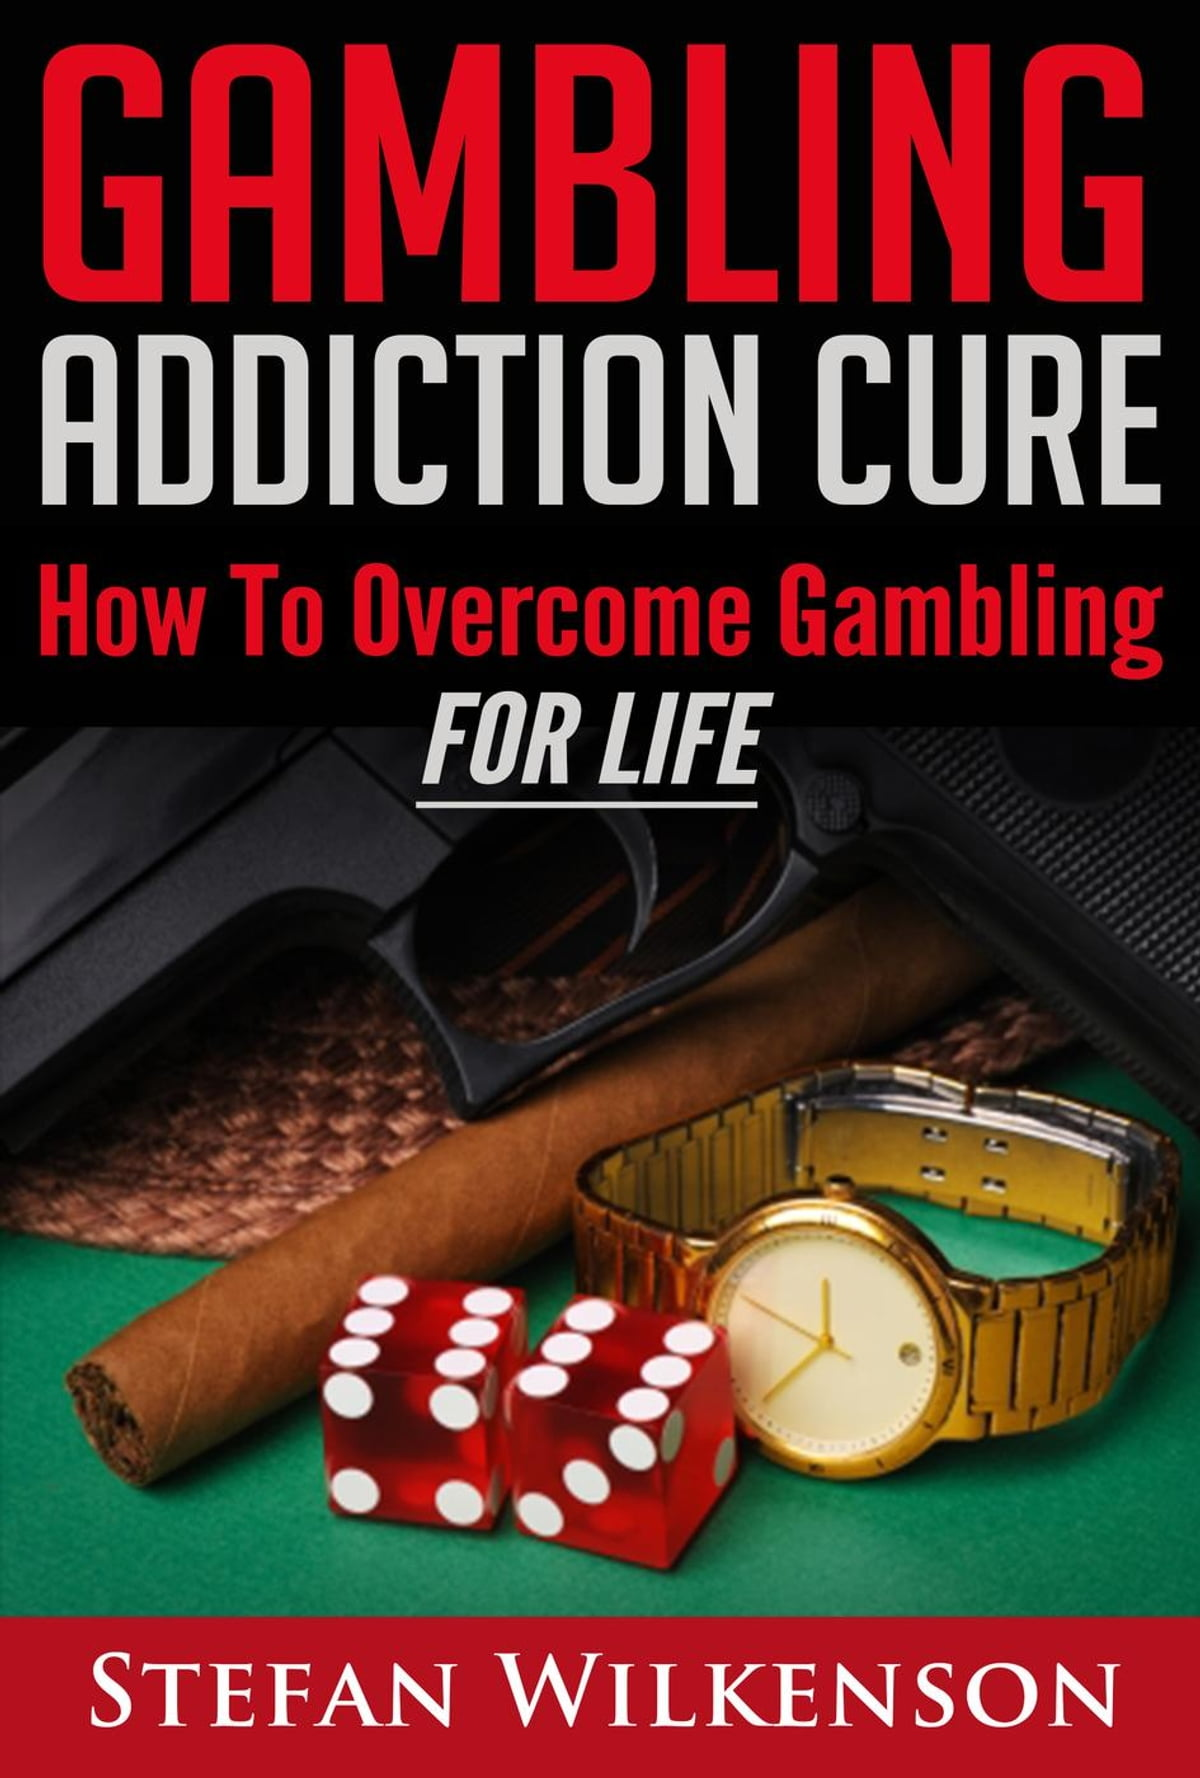 Cure for gambling addiction gambling taxable